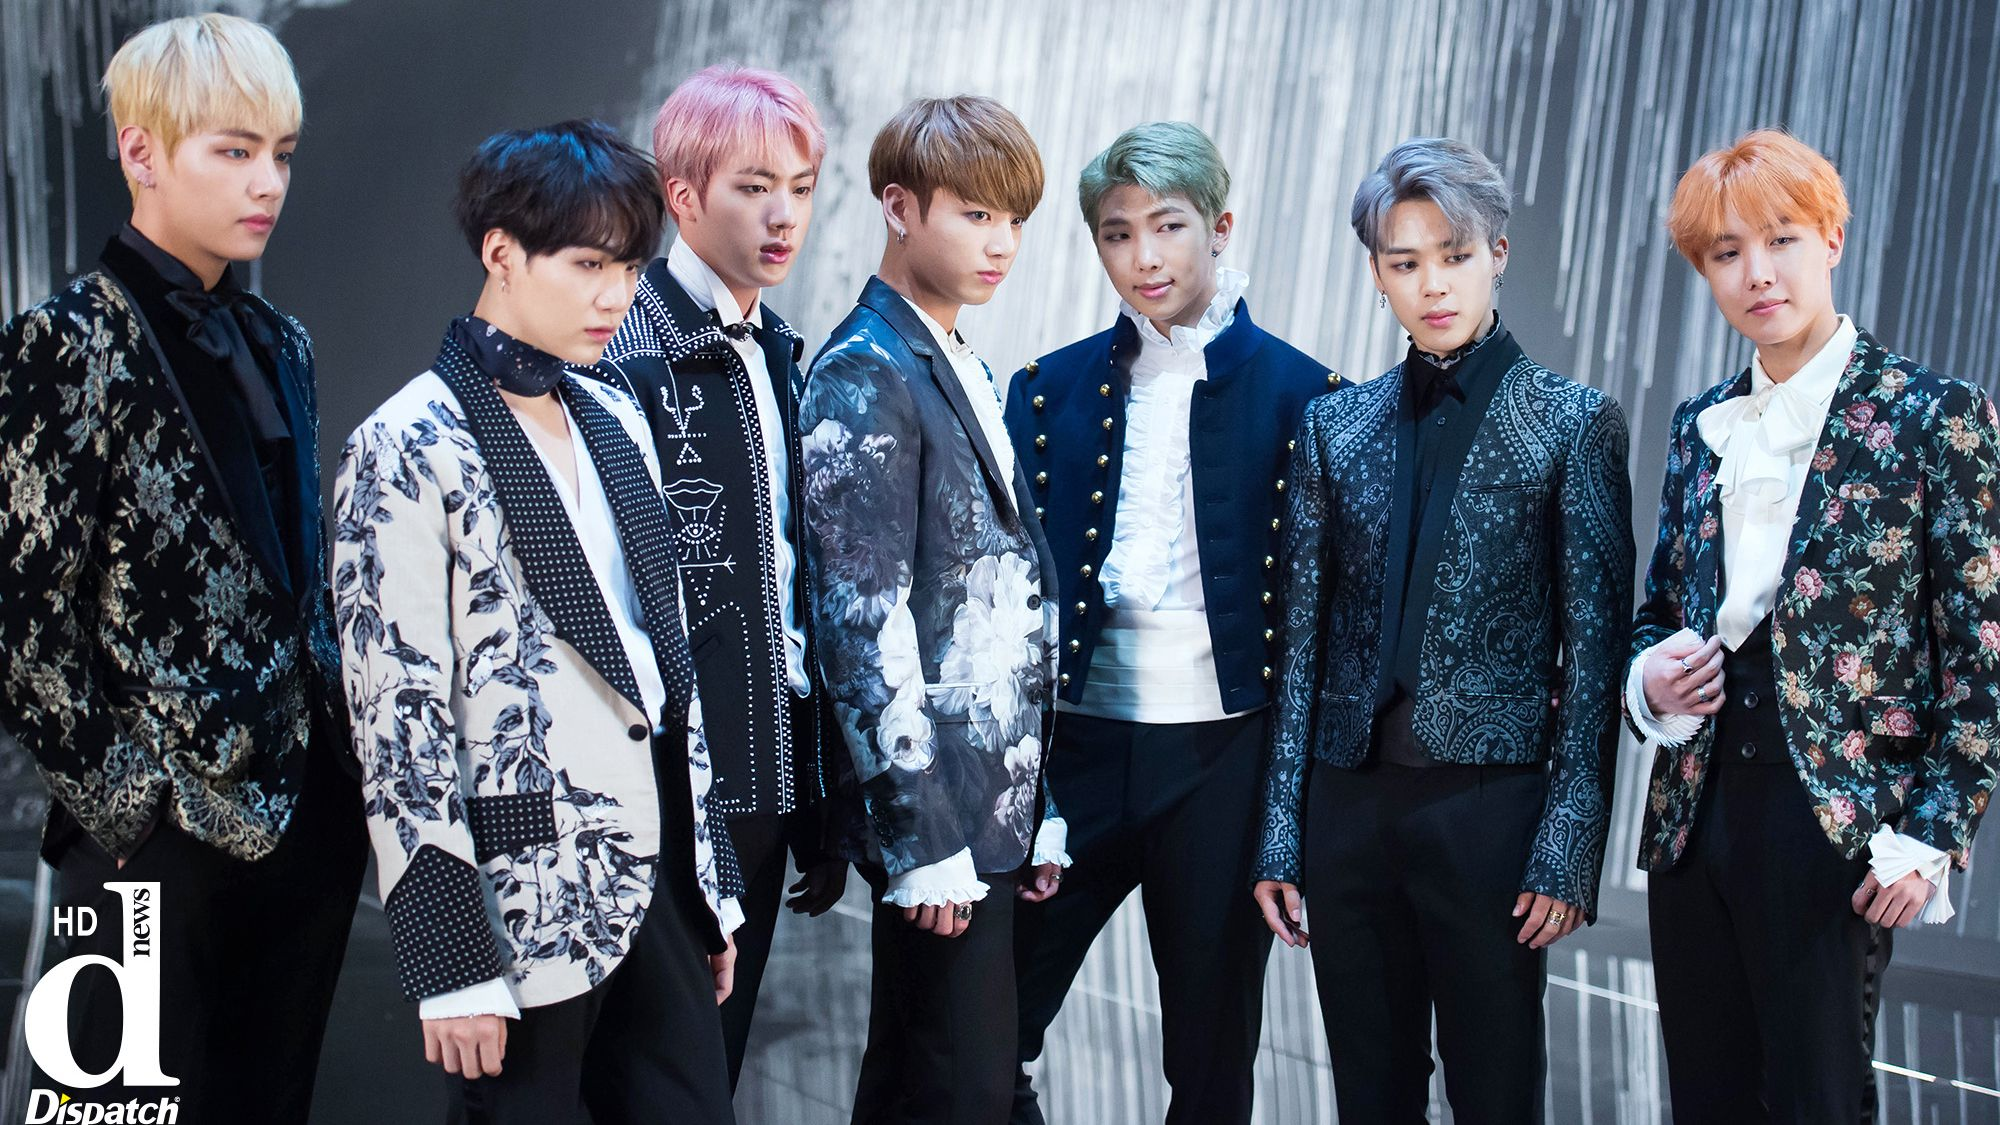 bts wallpaper download, bts high quality pictures